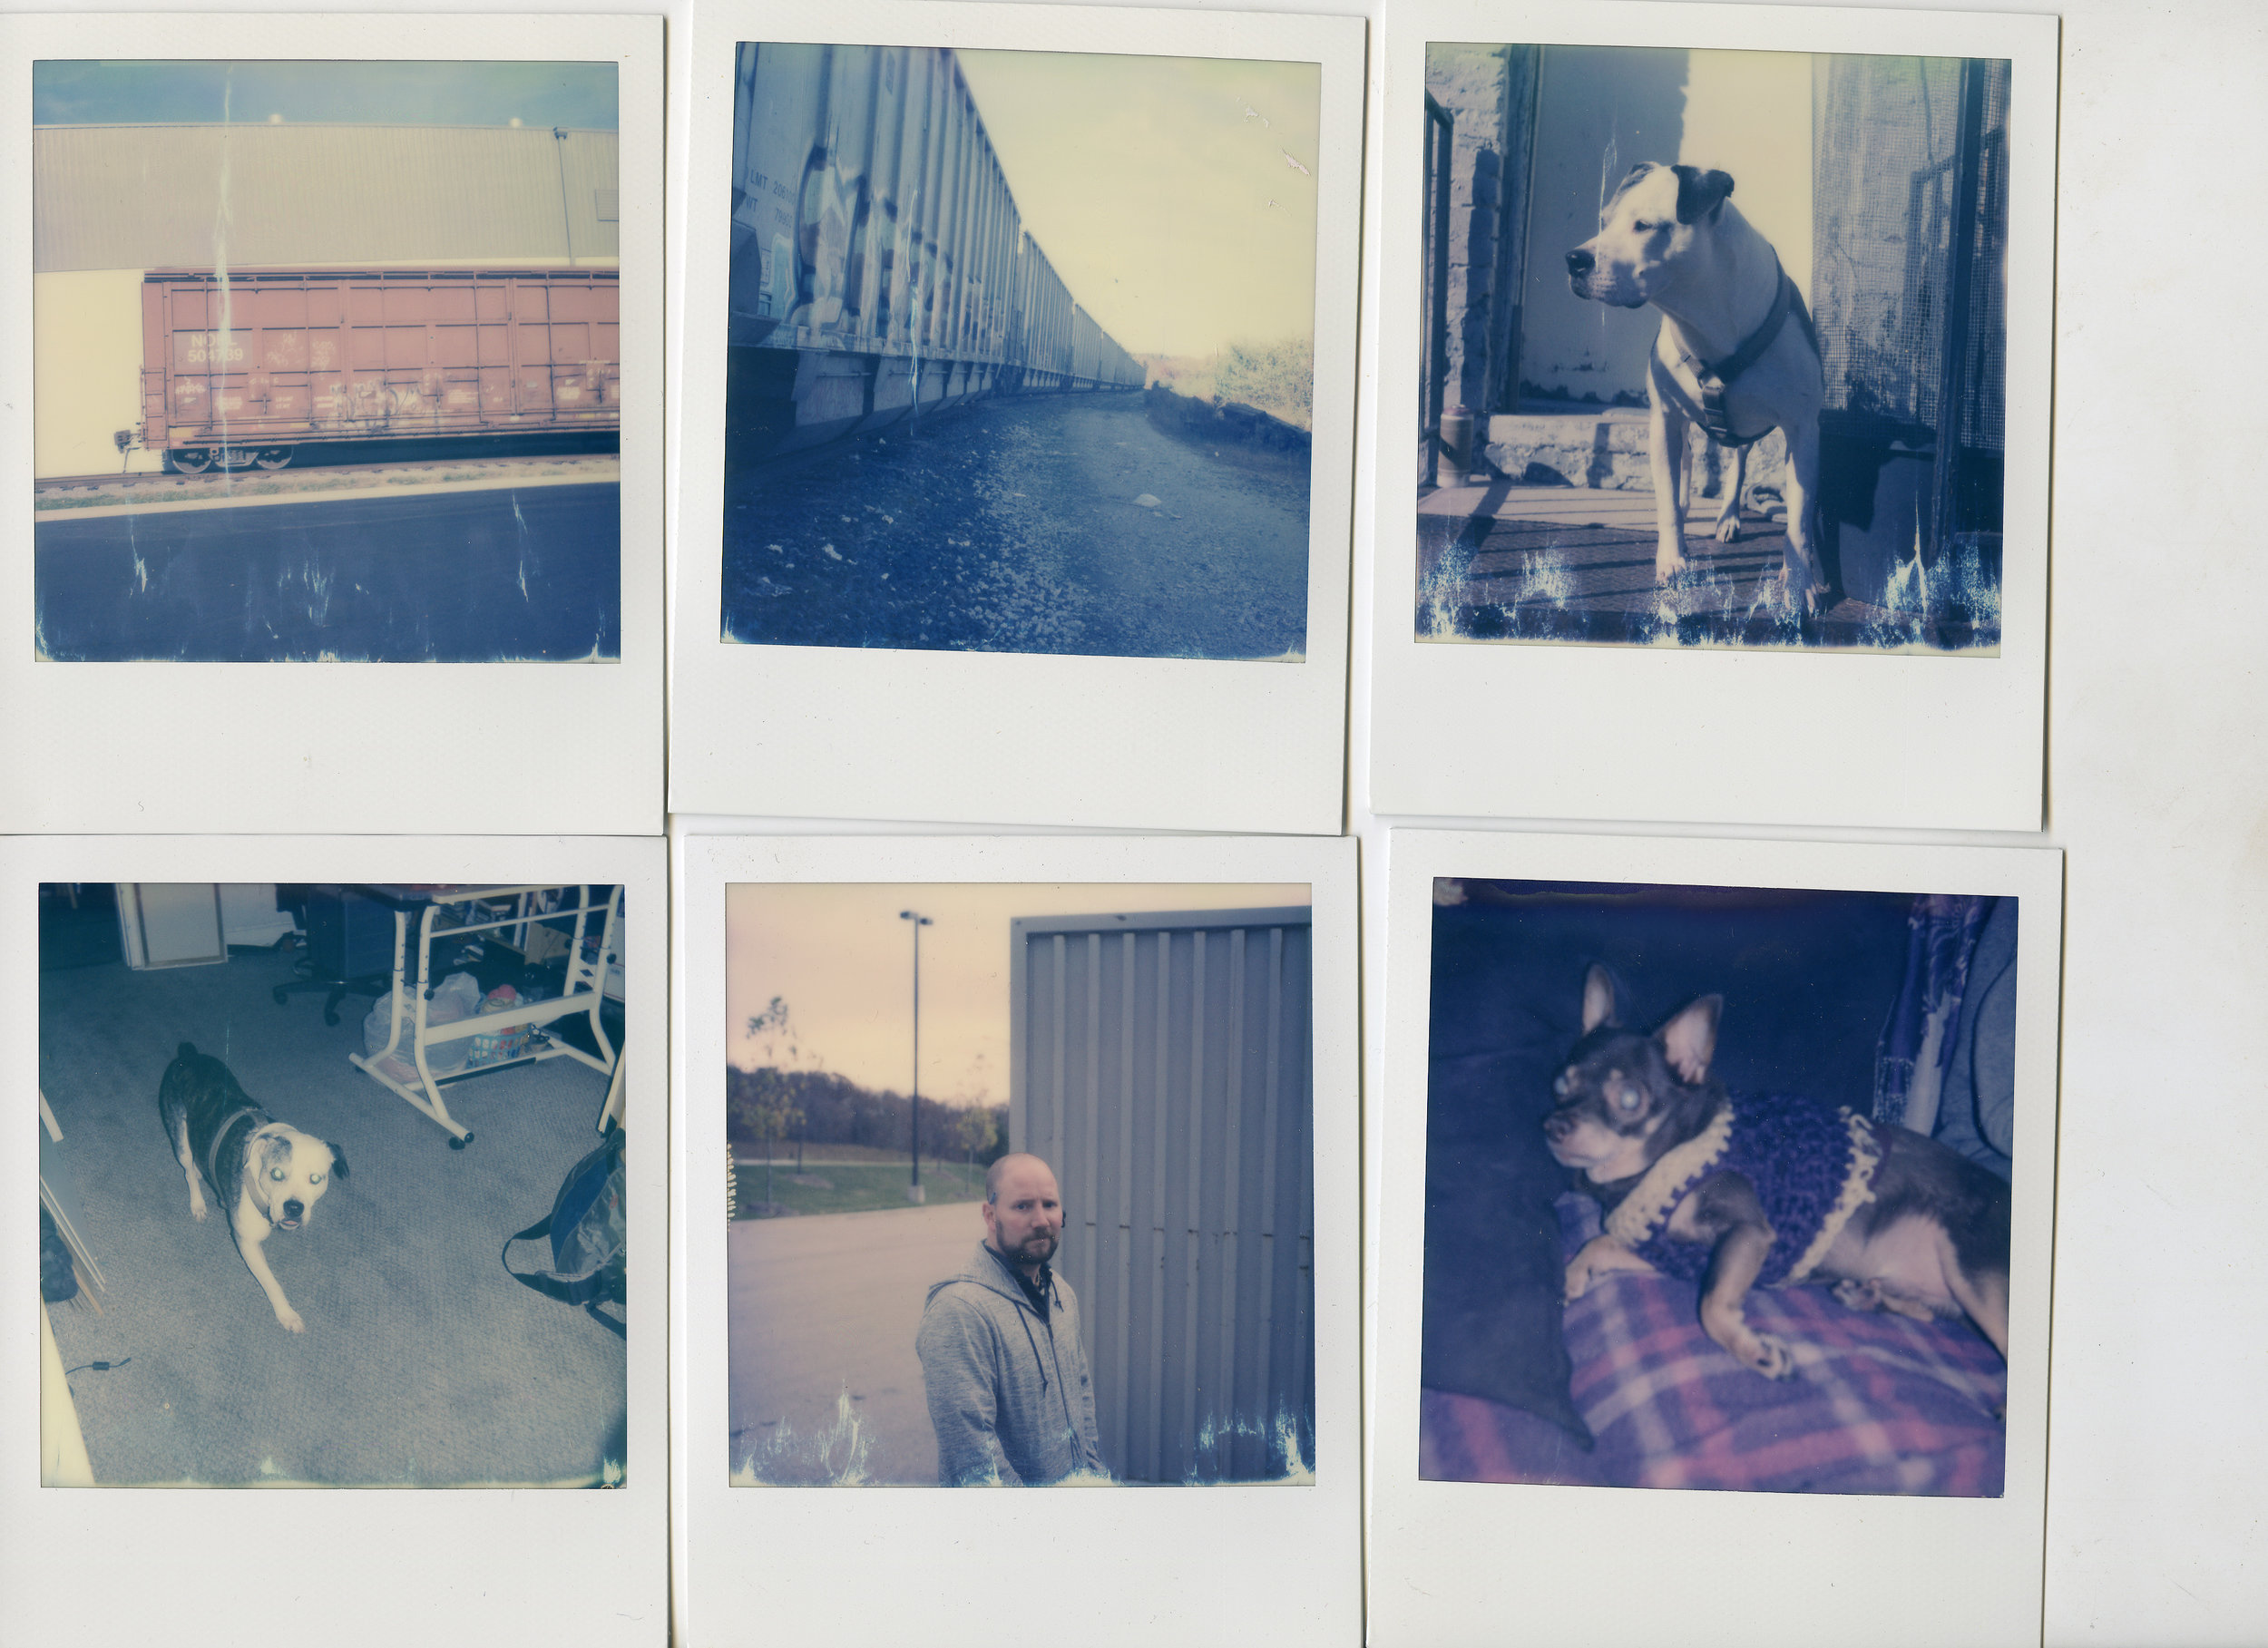 Impossible Project Color film